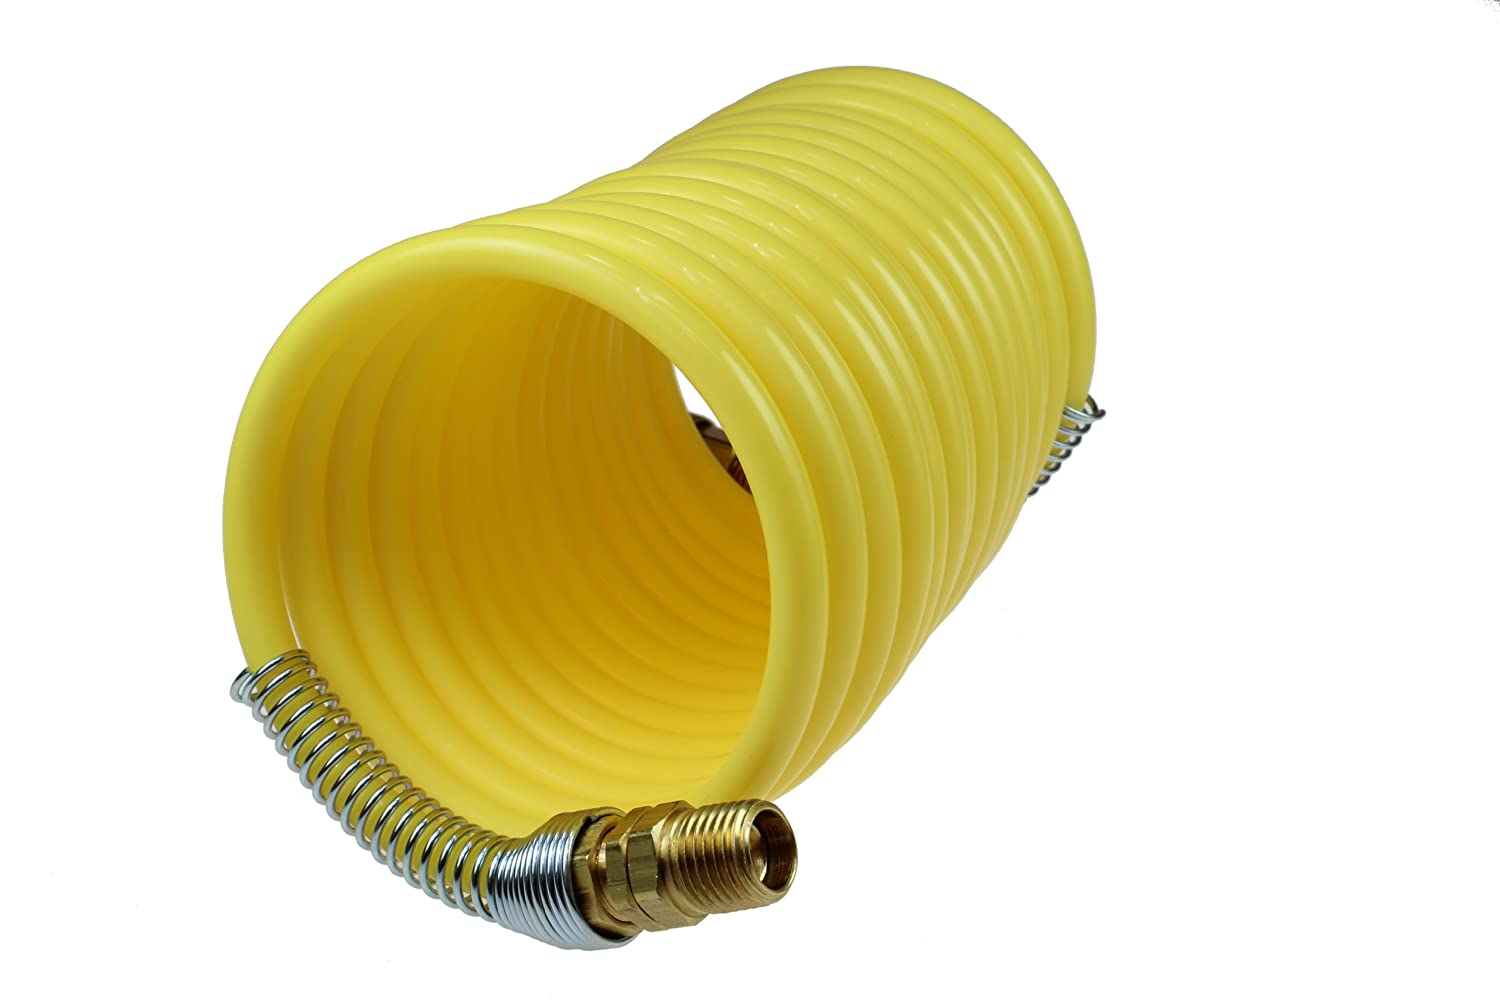 2 3//8-Inch Swivel Fittings Coilhose Pneumatics N38-12B Coiled Nylon Air Hose 3//8-Inch ID 12-Foot Length with